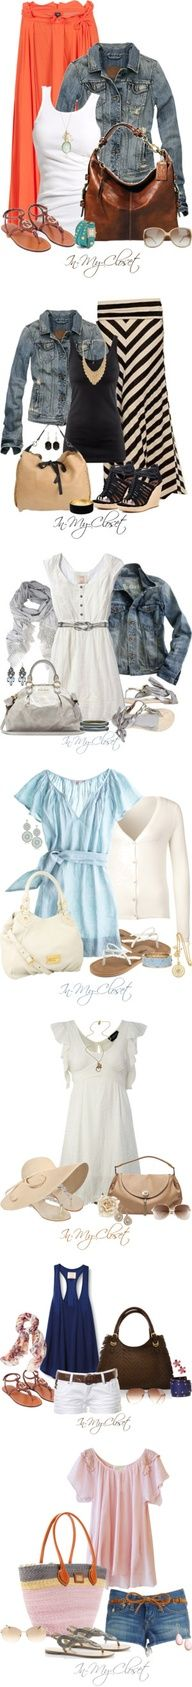 """Hurry Up Summer!"" by in-my-closet on Polyvore"